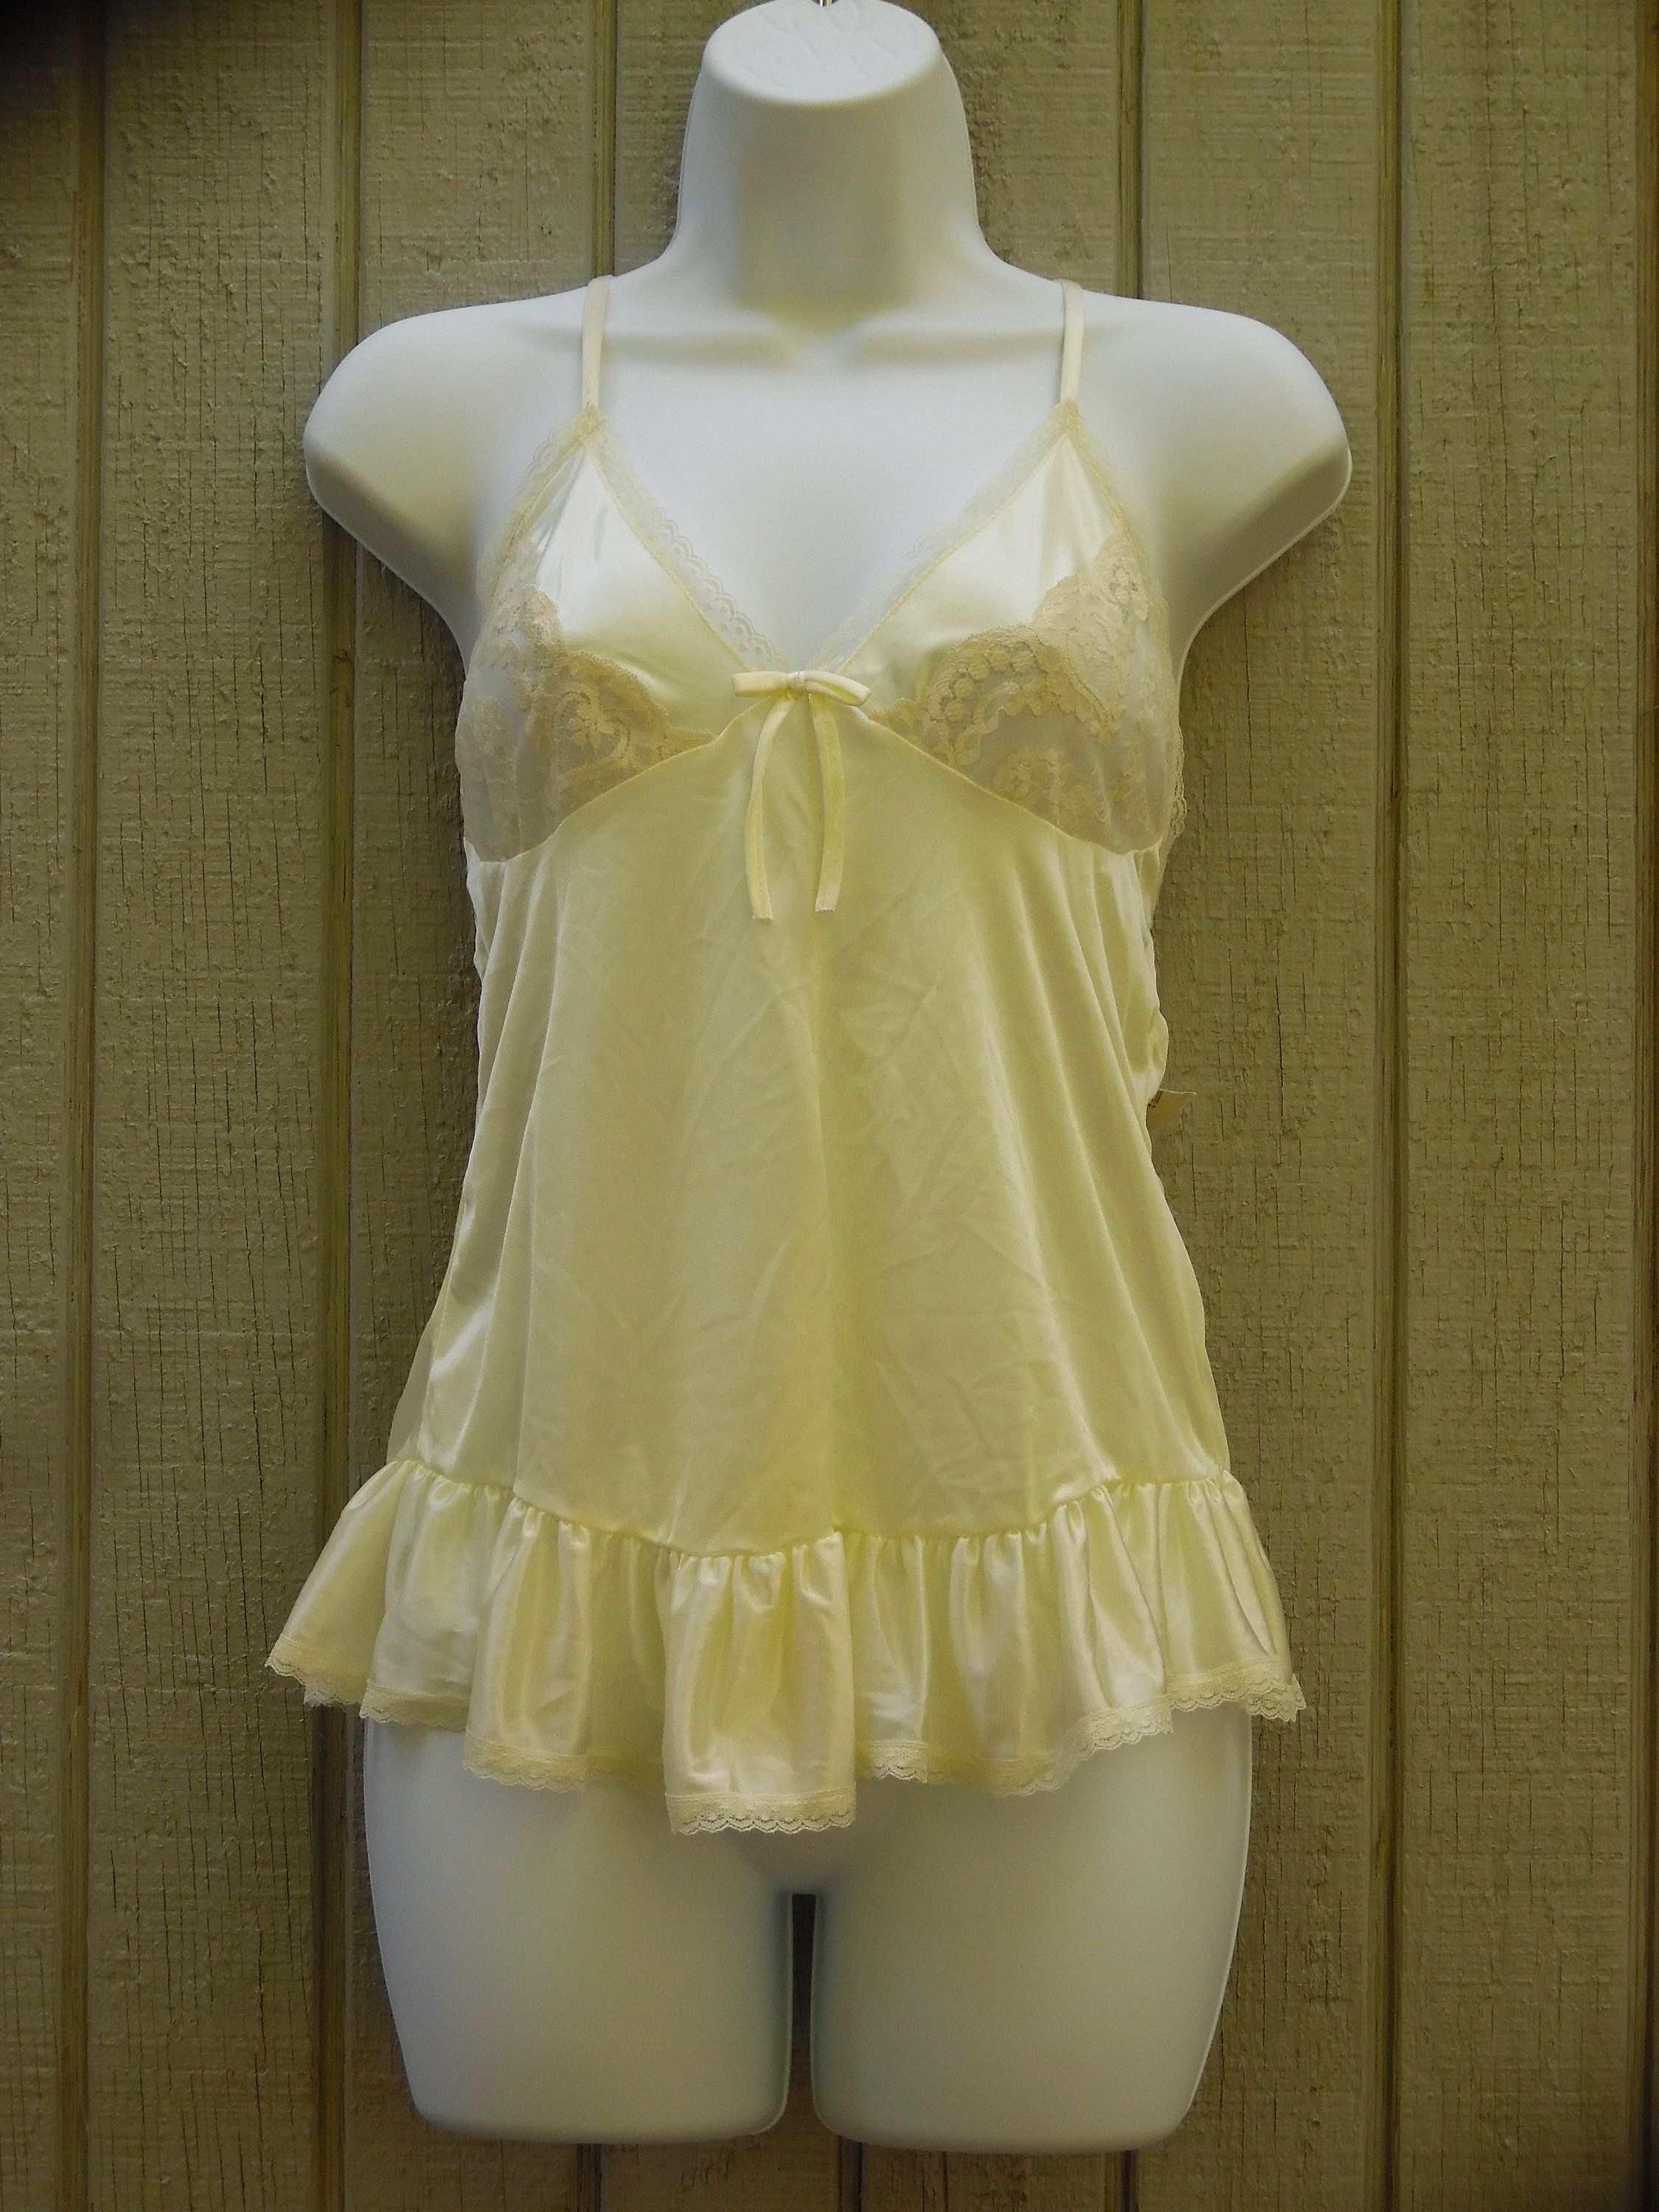 c4a62ba760ad6 80s 90s Vintage Babydoll Nightie New with Tags Size Medium/Small in ...